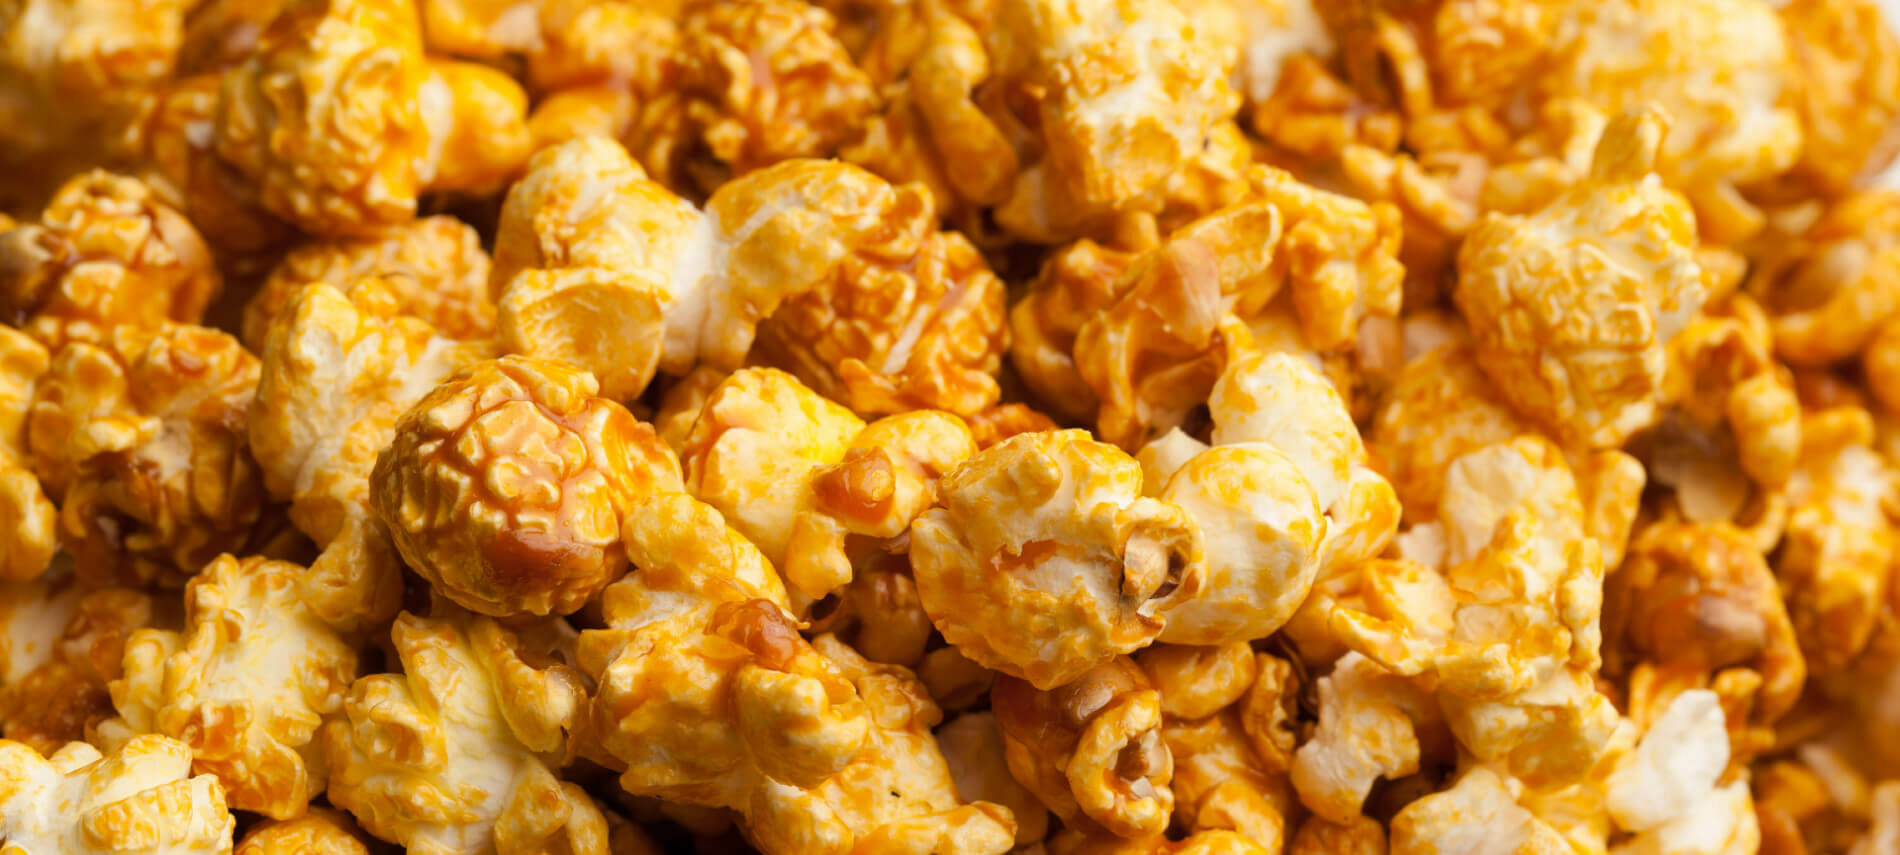 Golden Yellow Caramel Popcorn